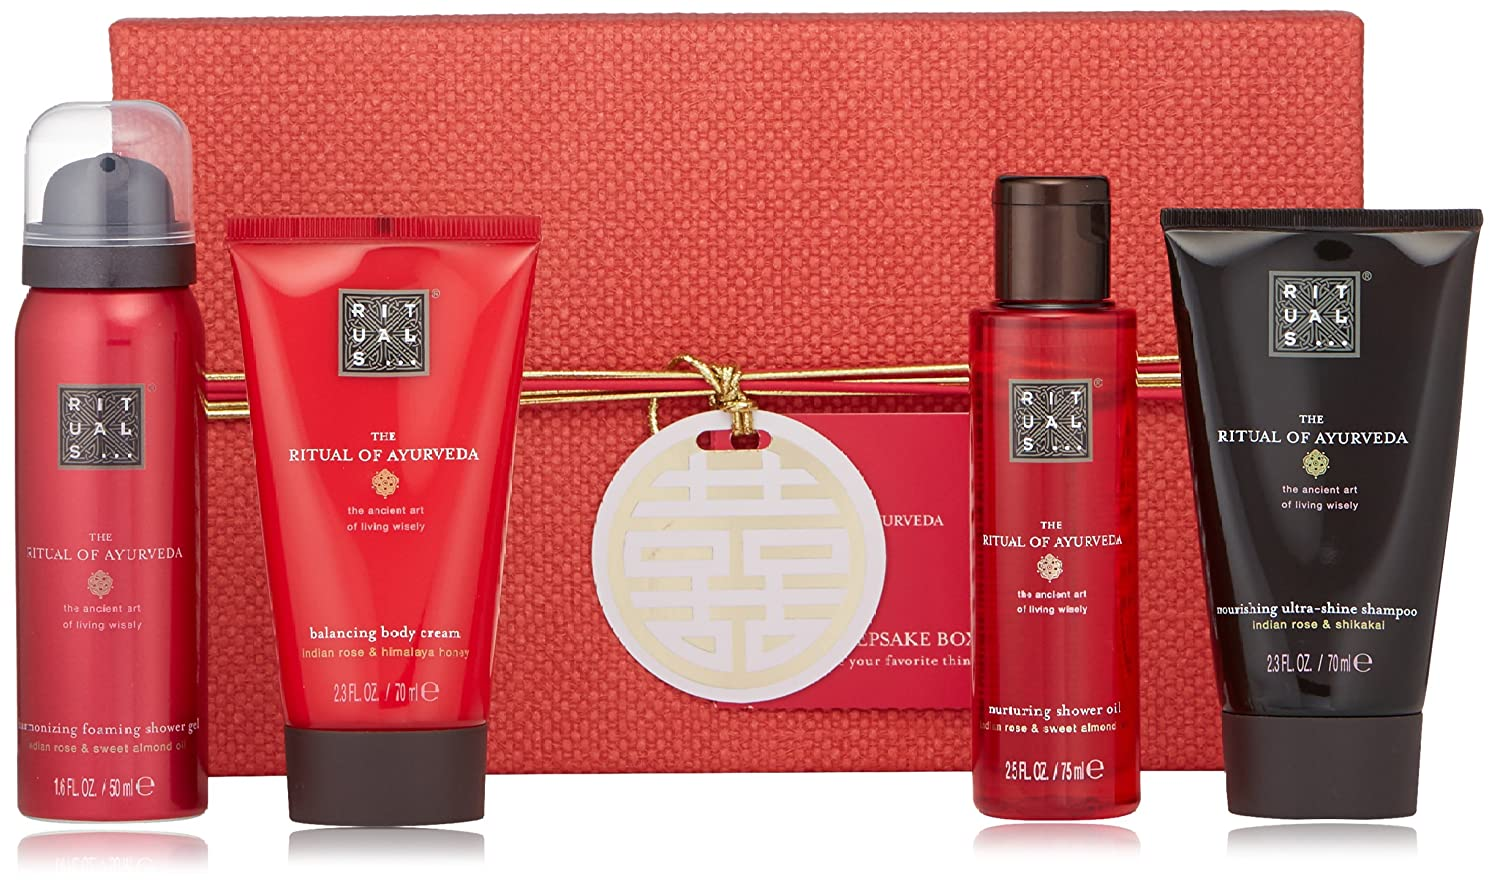 RITUALS The Ritual of Ayurveda - Balancing Treat 2017 set de regalo S